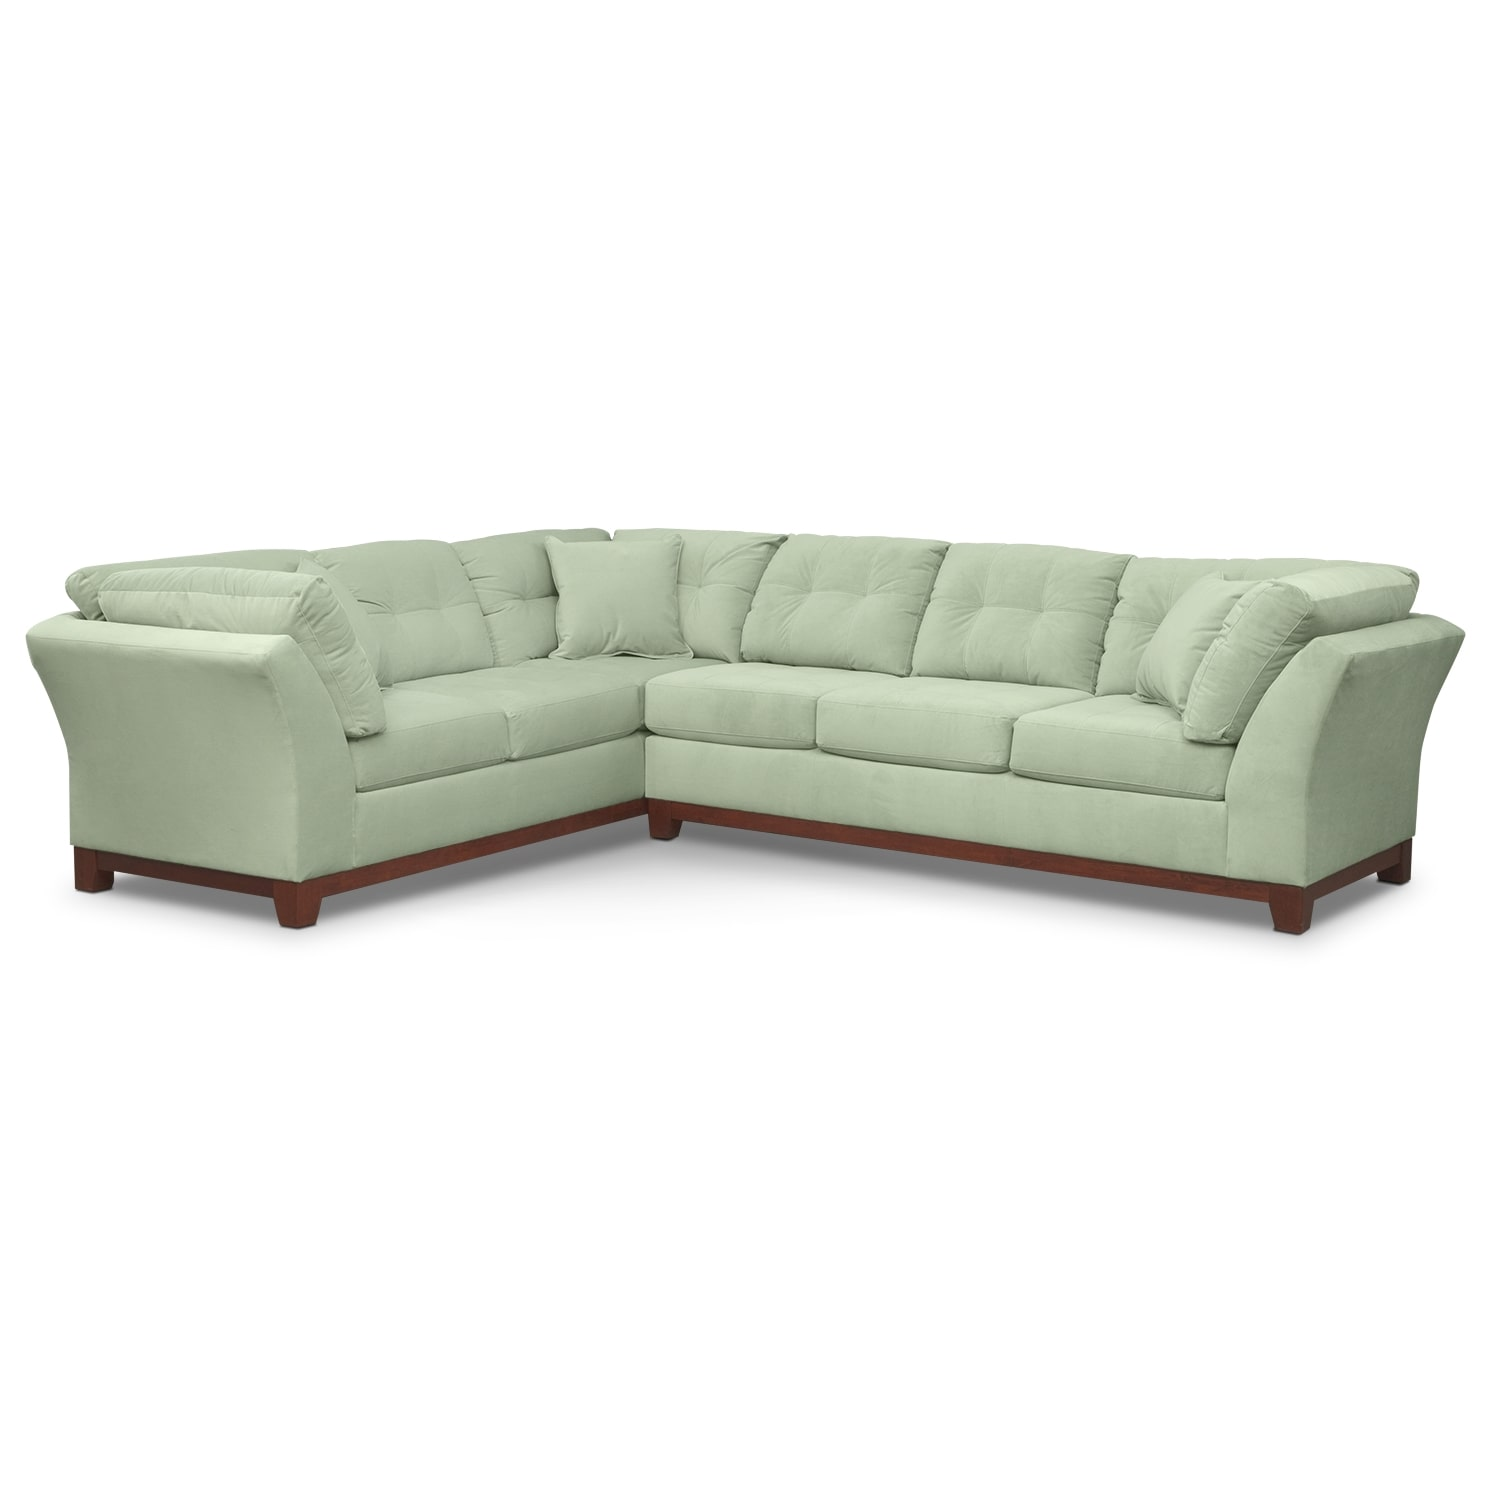 Living Room Furniture - Brookside II Spa 2 Pc. Sectional